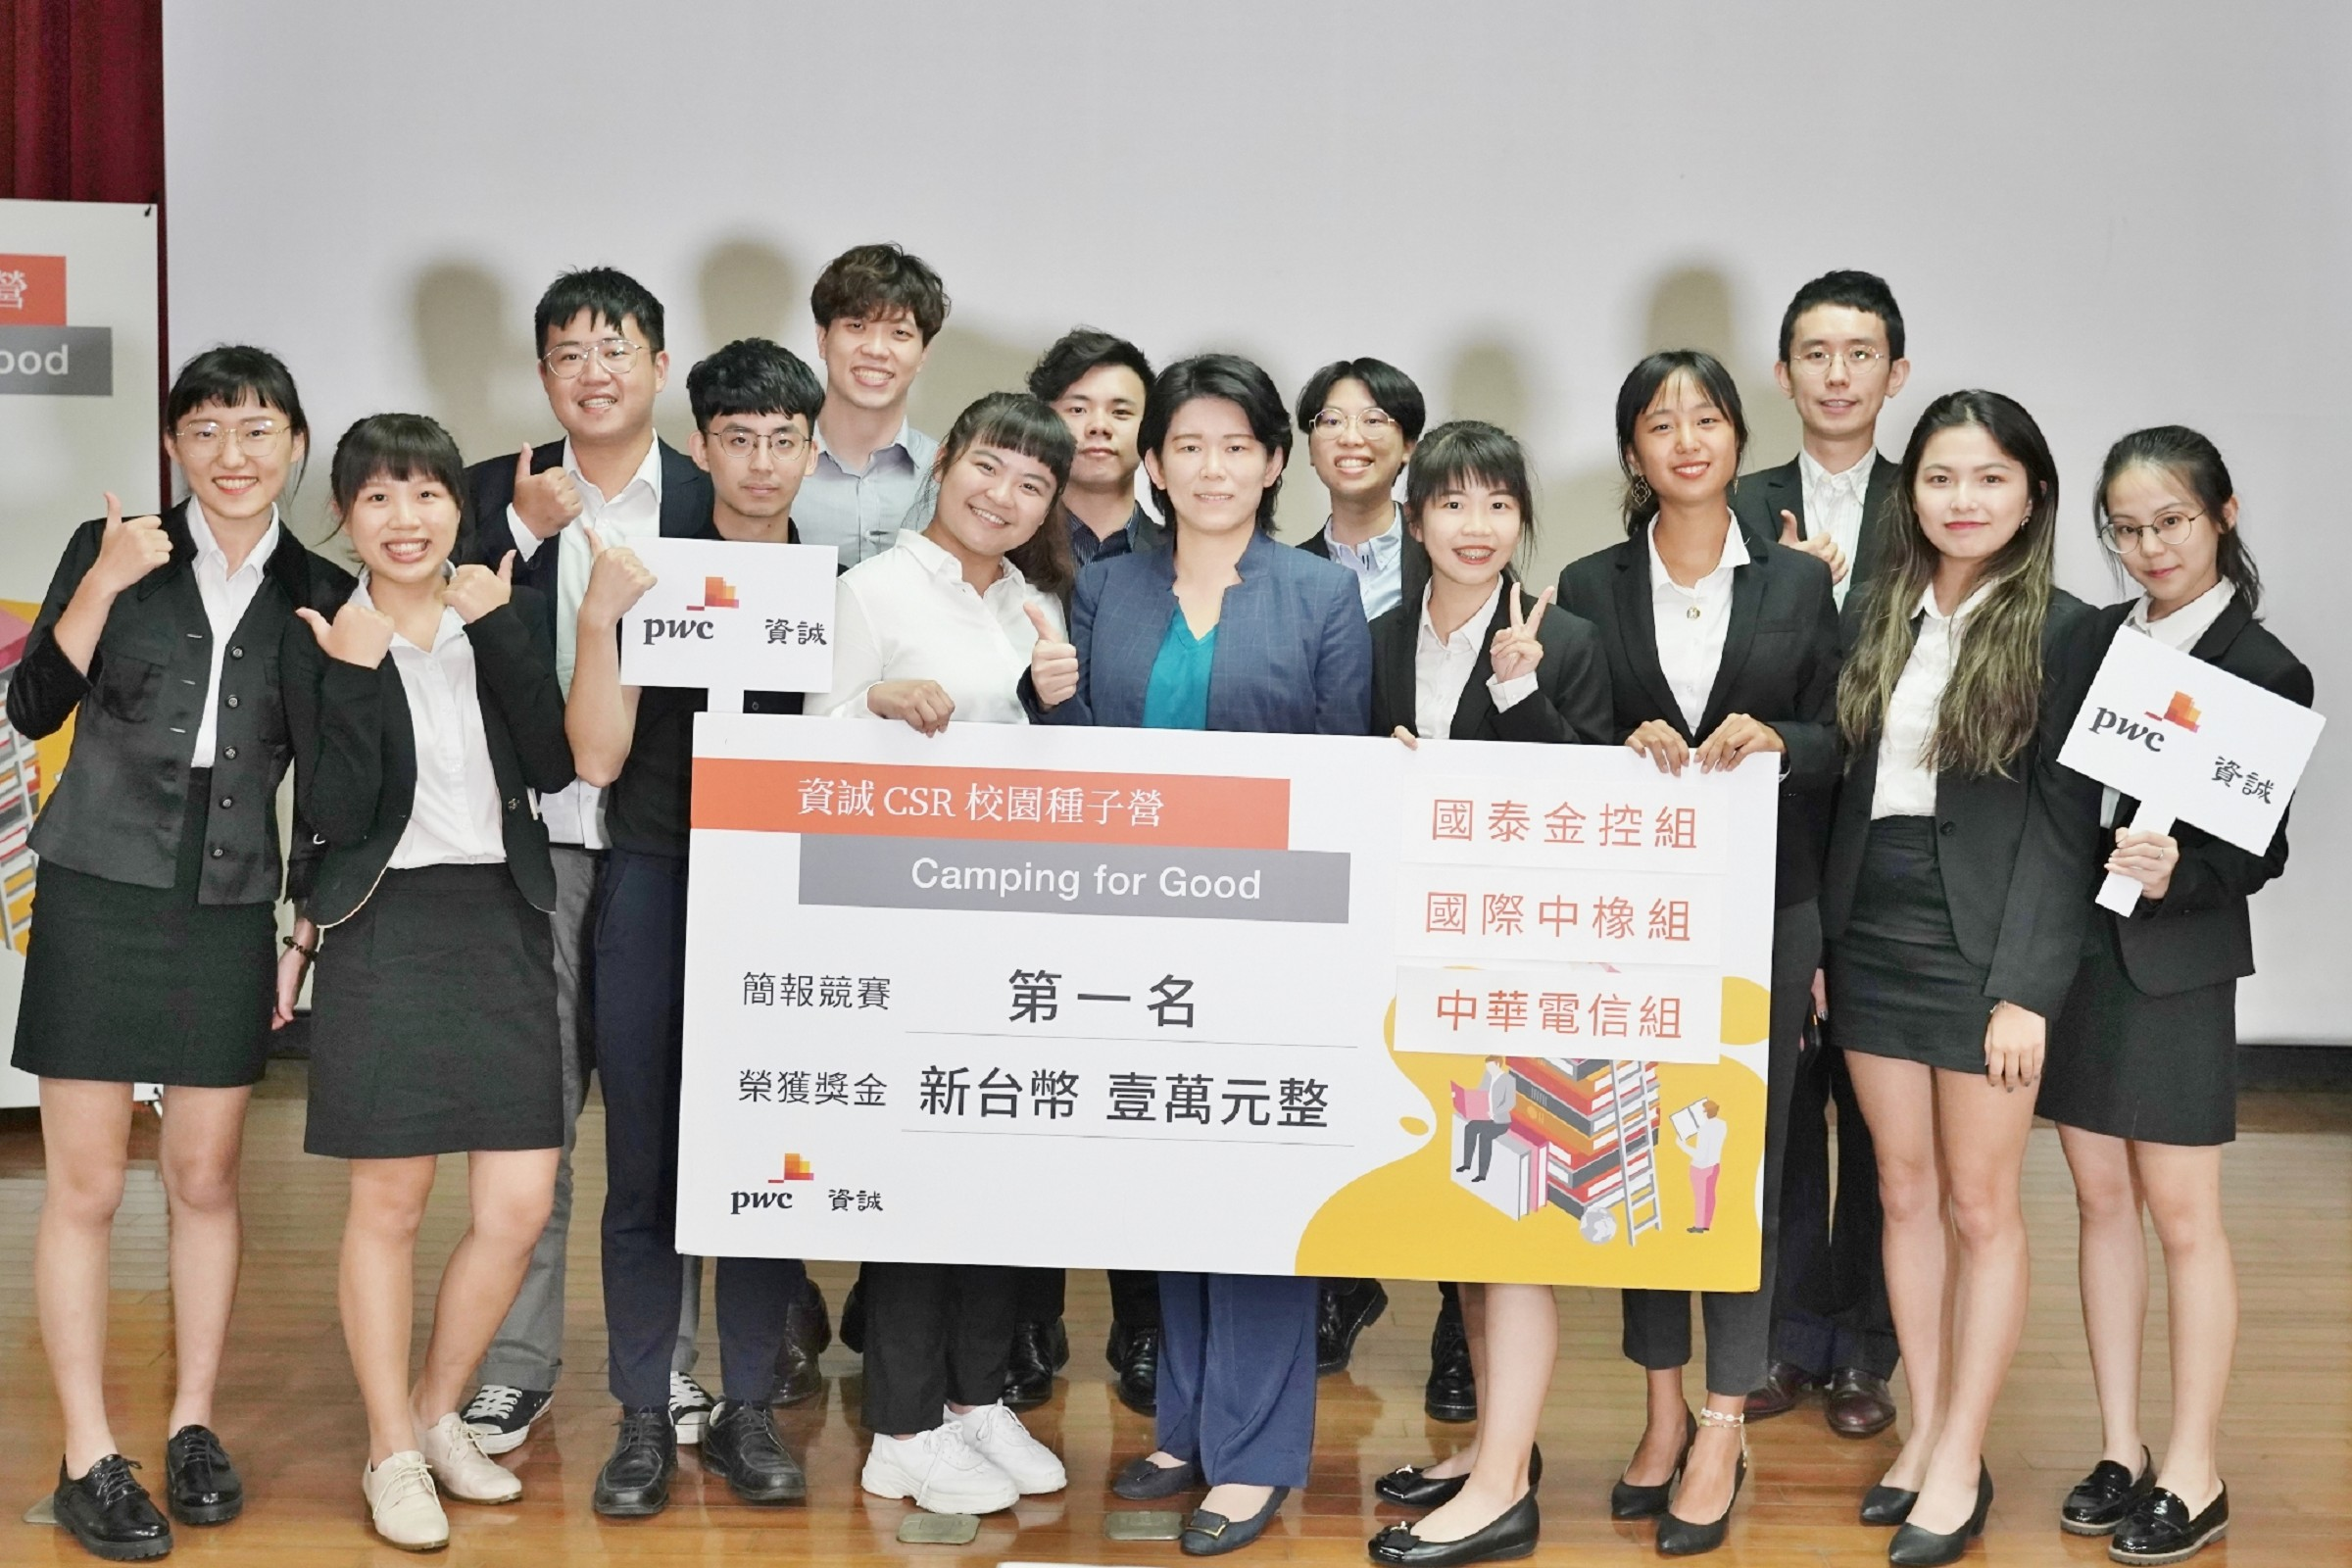 NSYSU students' teams win 3 prizes for CSR proposals during the 8th PwC Taiwan Camping for Good